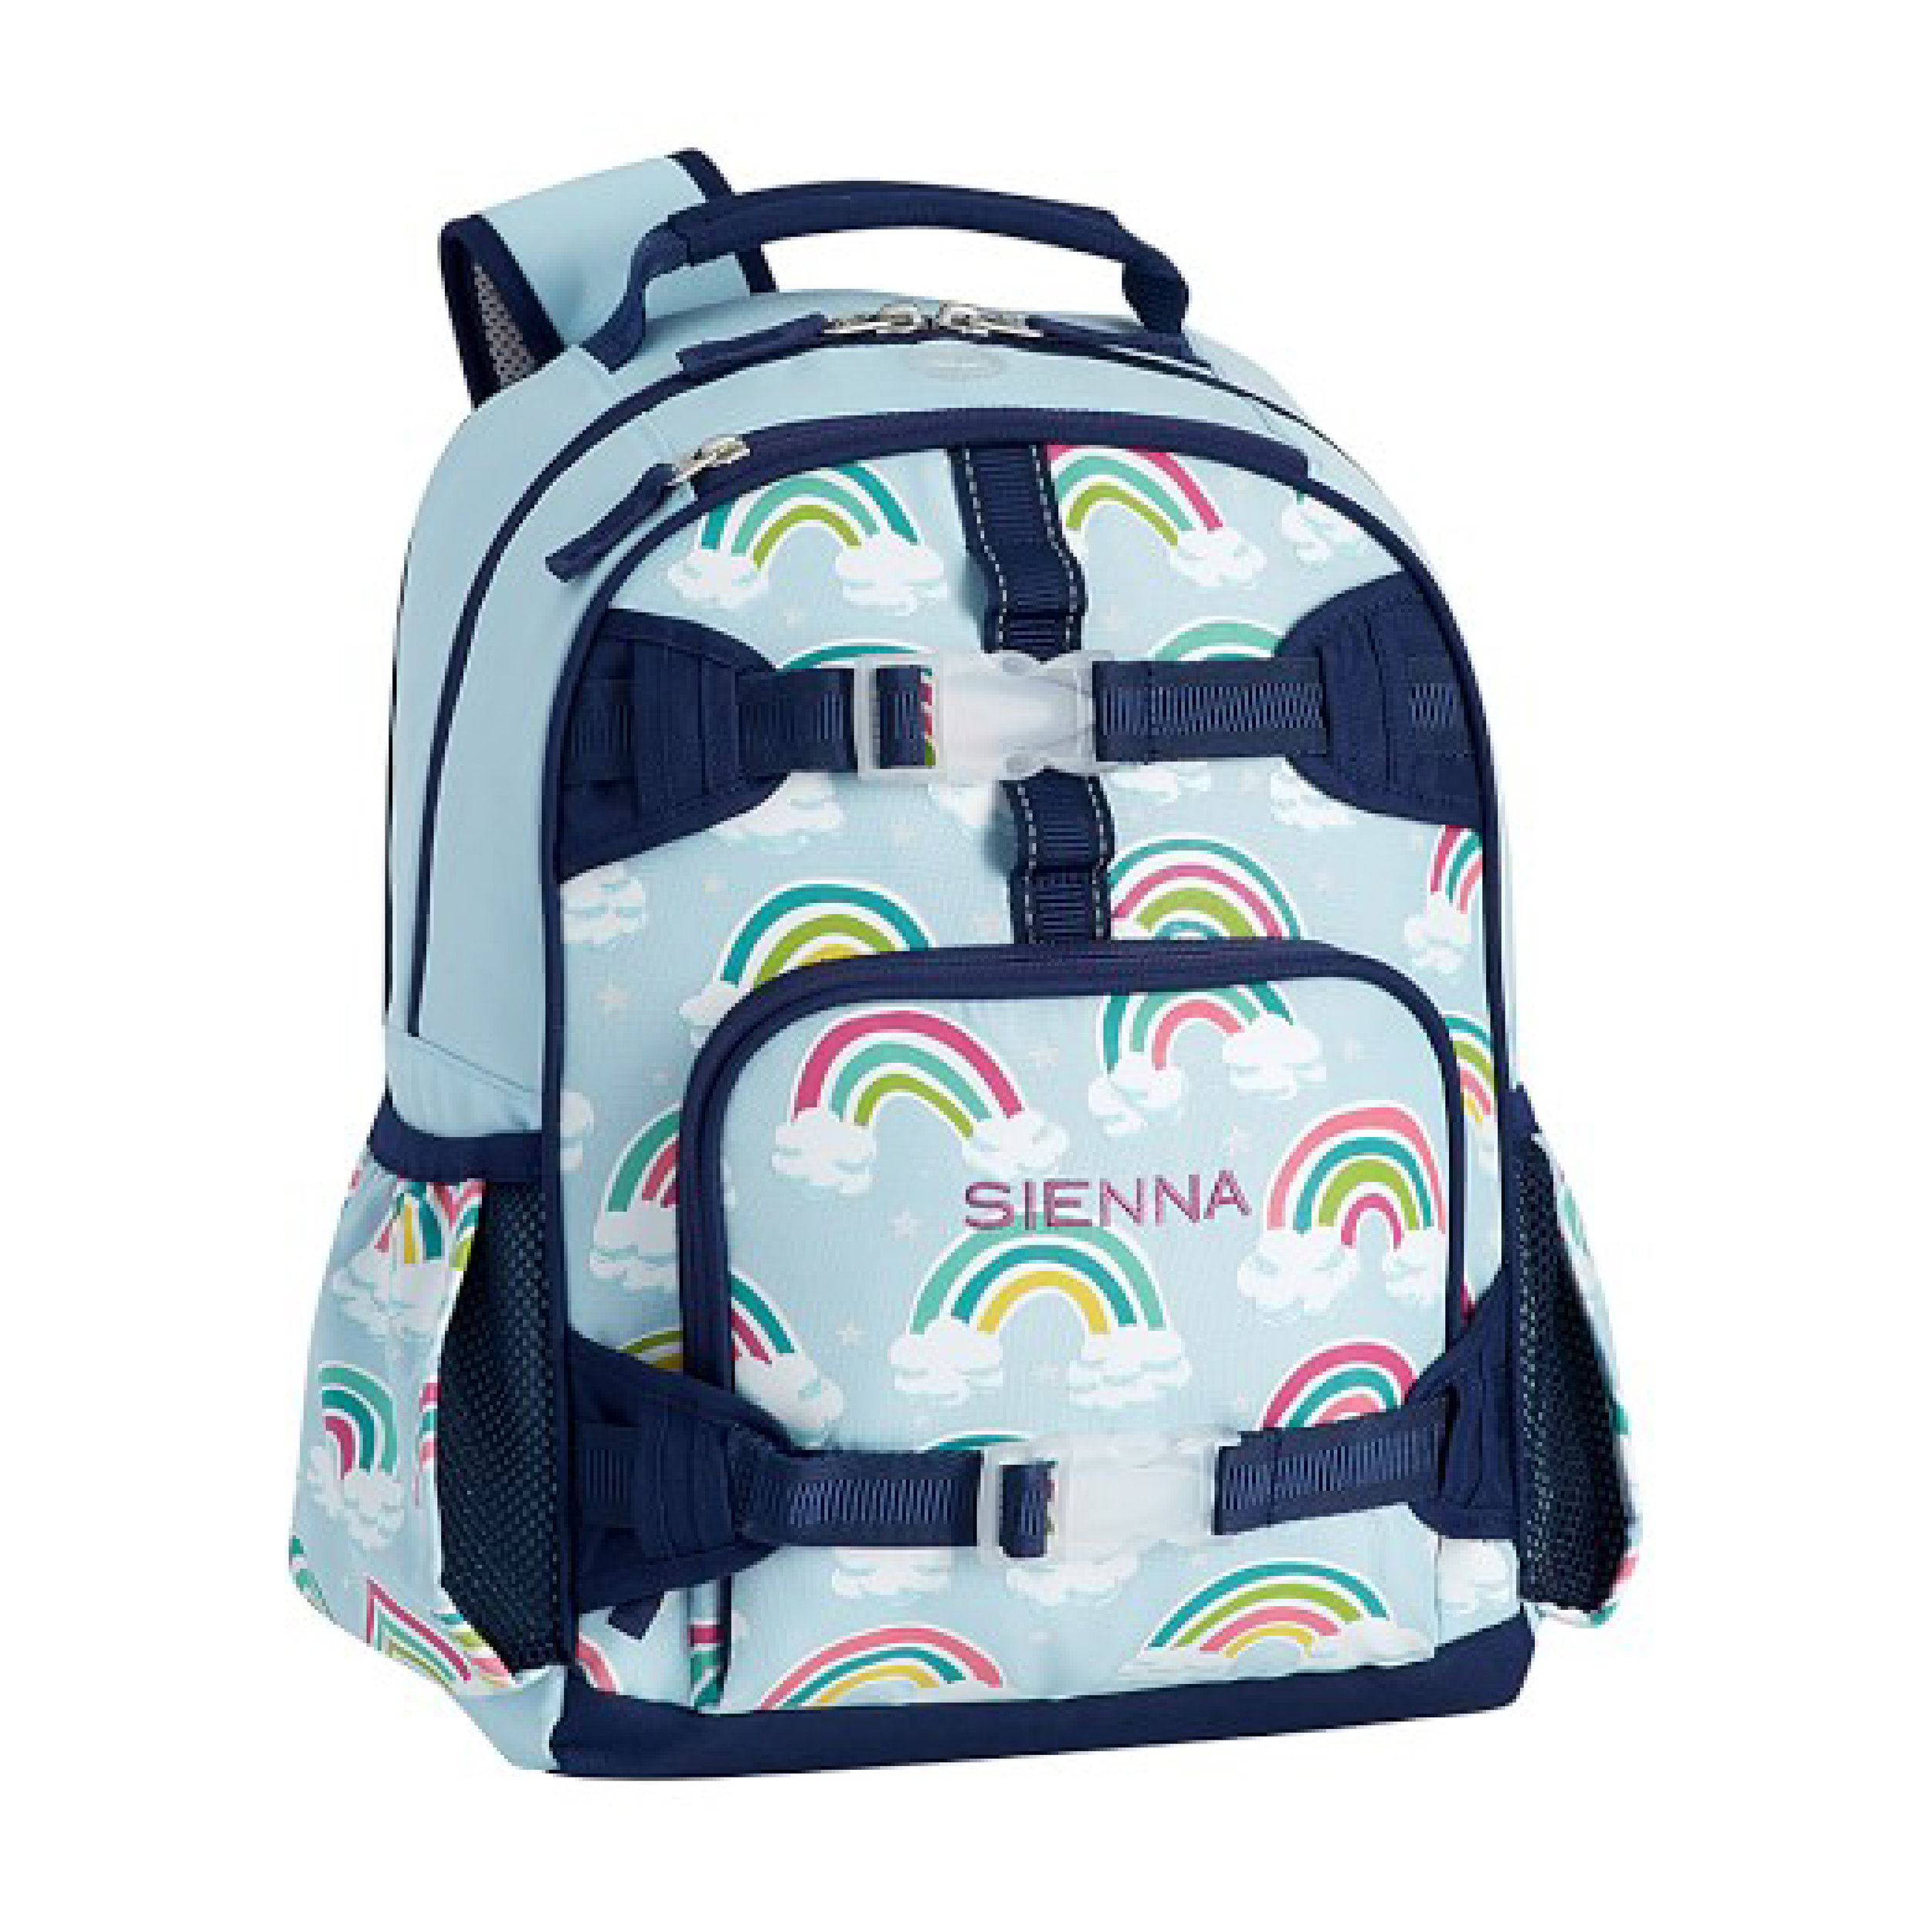 Pottery Barn - Pottery Barn backpacks seem to be our follower's favorite. They hold up well and come in a lot of patterns and sizes. Perfect for pre schoolers to high schoolers.